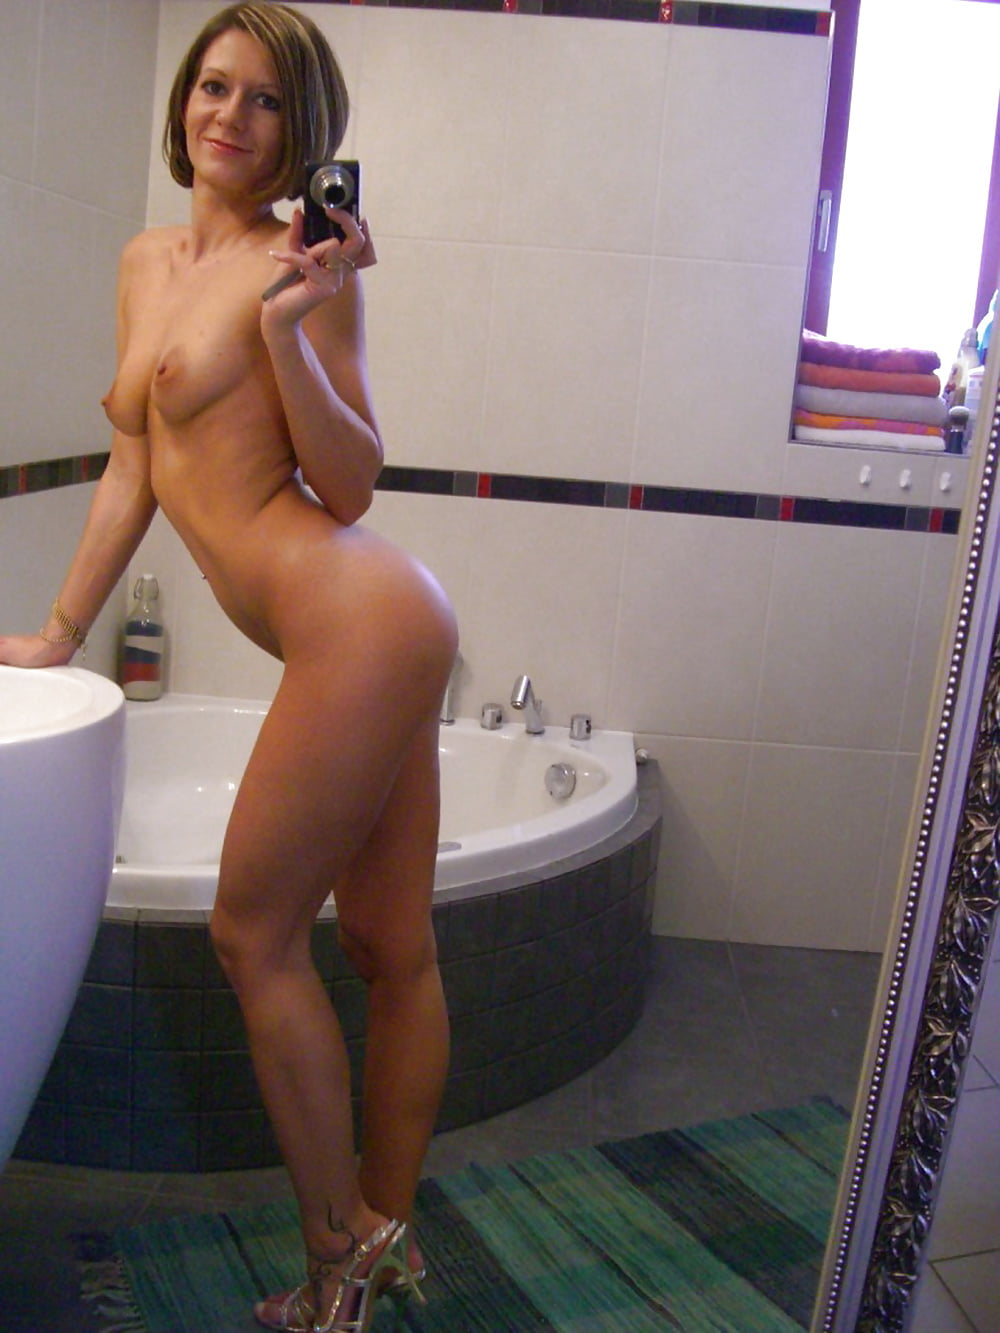 from-seinfeld-milf-nude-selfpics-home